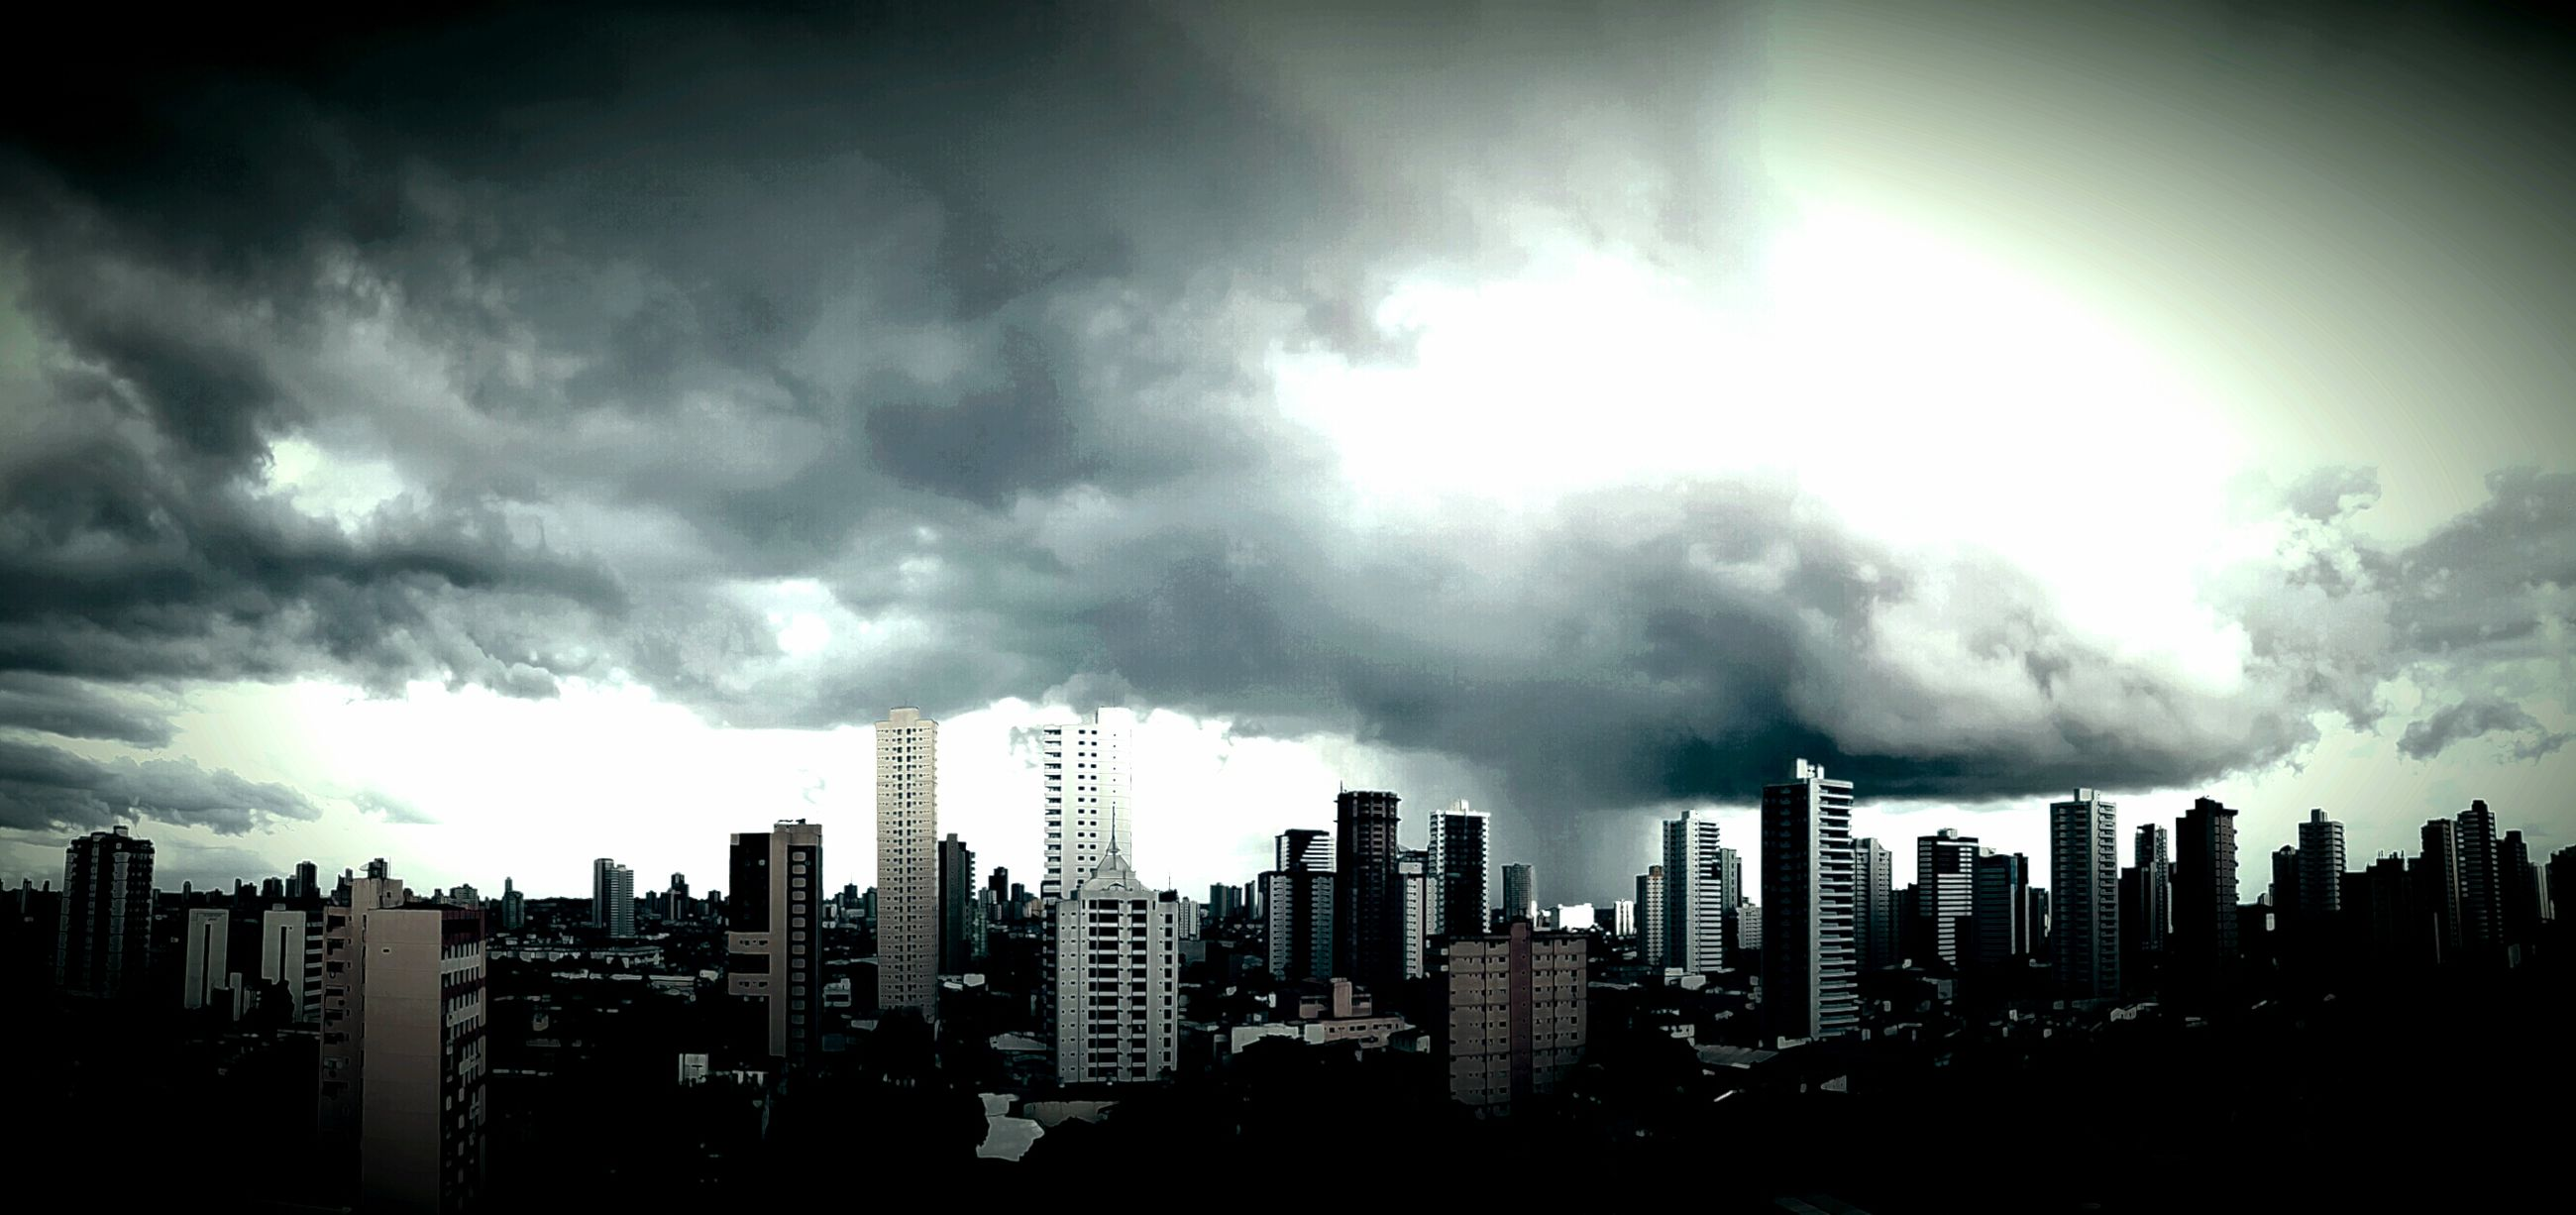 sky, city, building exterior, cloud - sky, cityscape, architecture, urban skyline, outdoors, no people, skyscraper, silhouette, built structure, storm cloud, nature, day